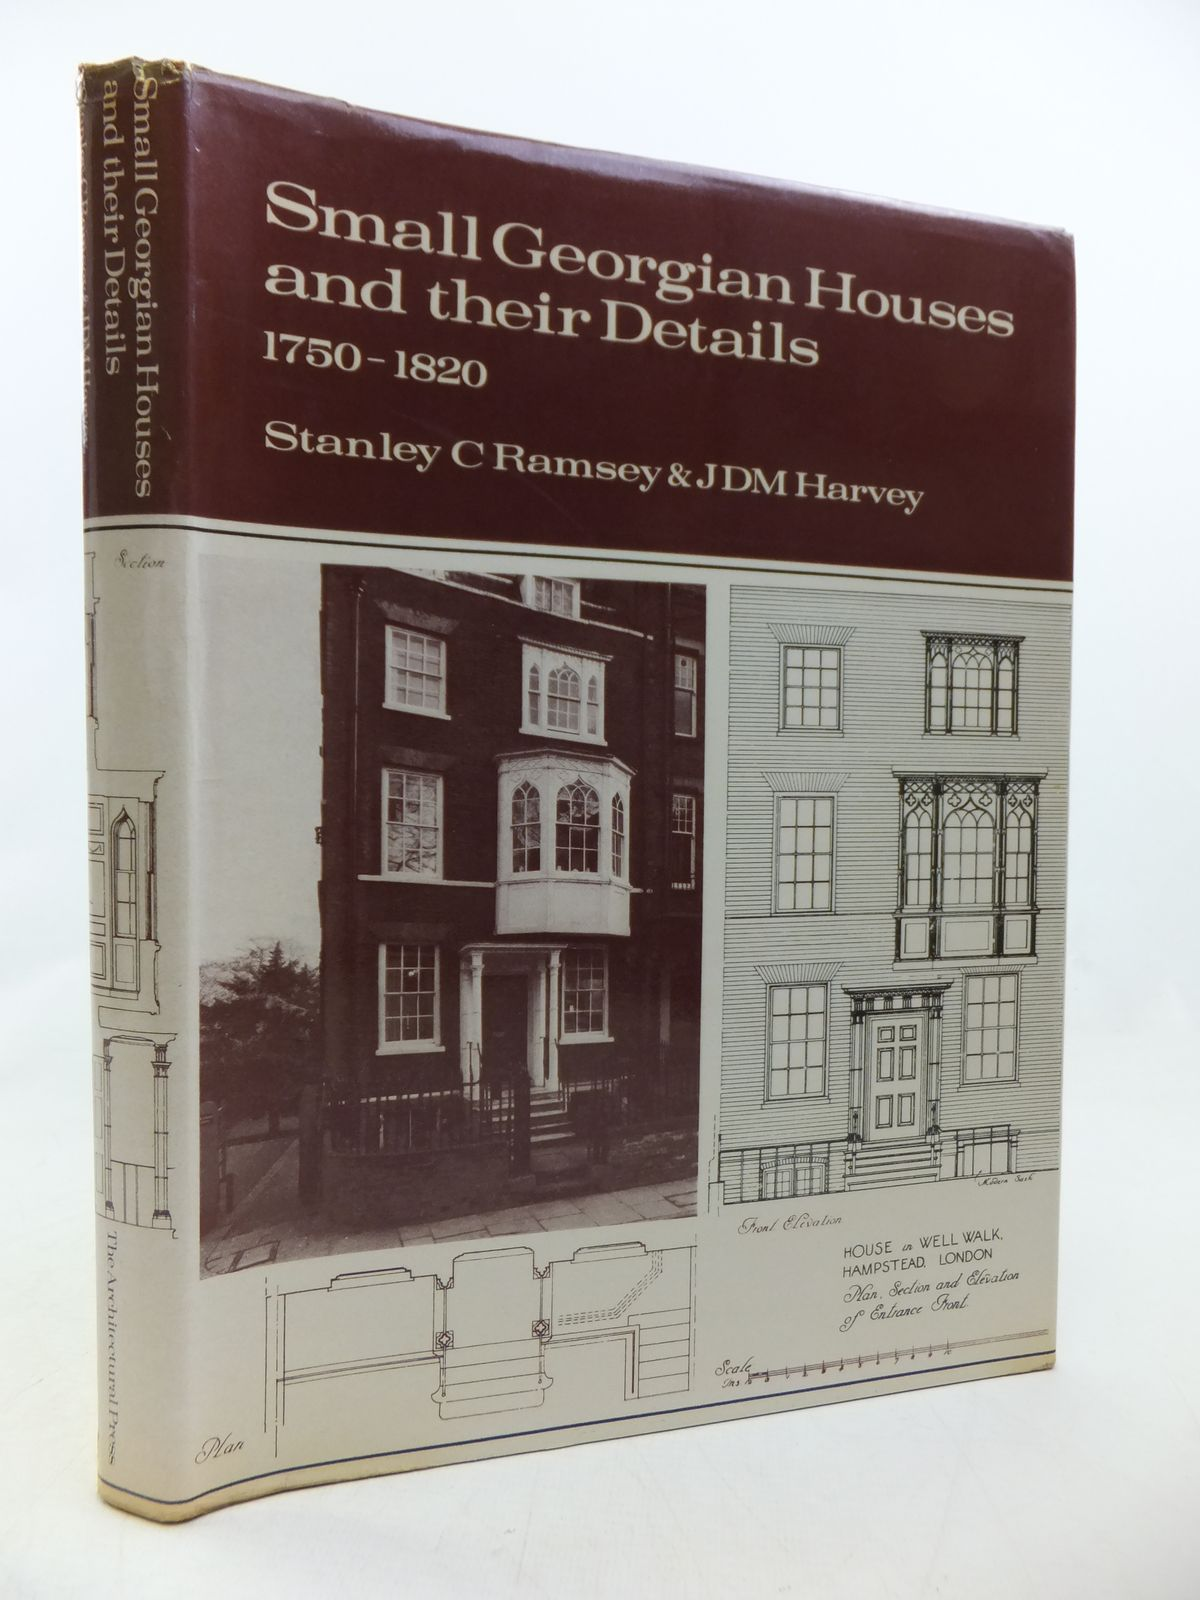 Small Georgian Houses And Their Details 1750-1820